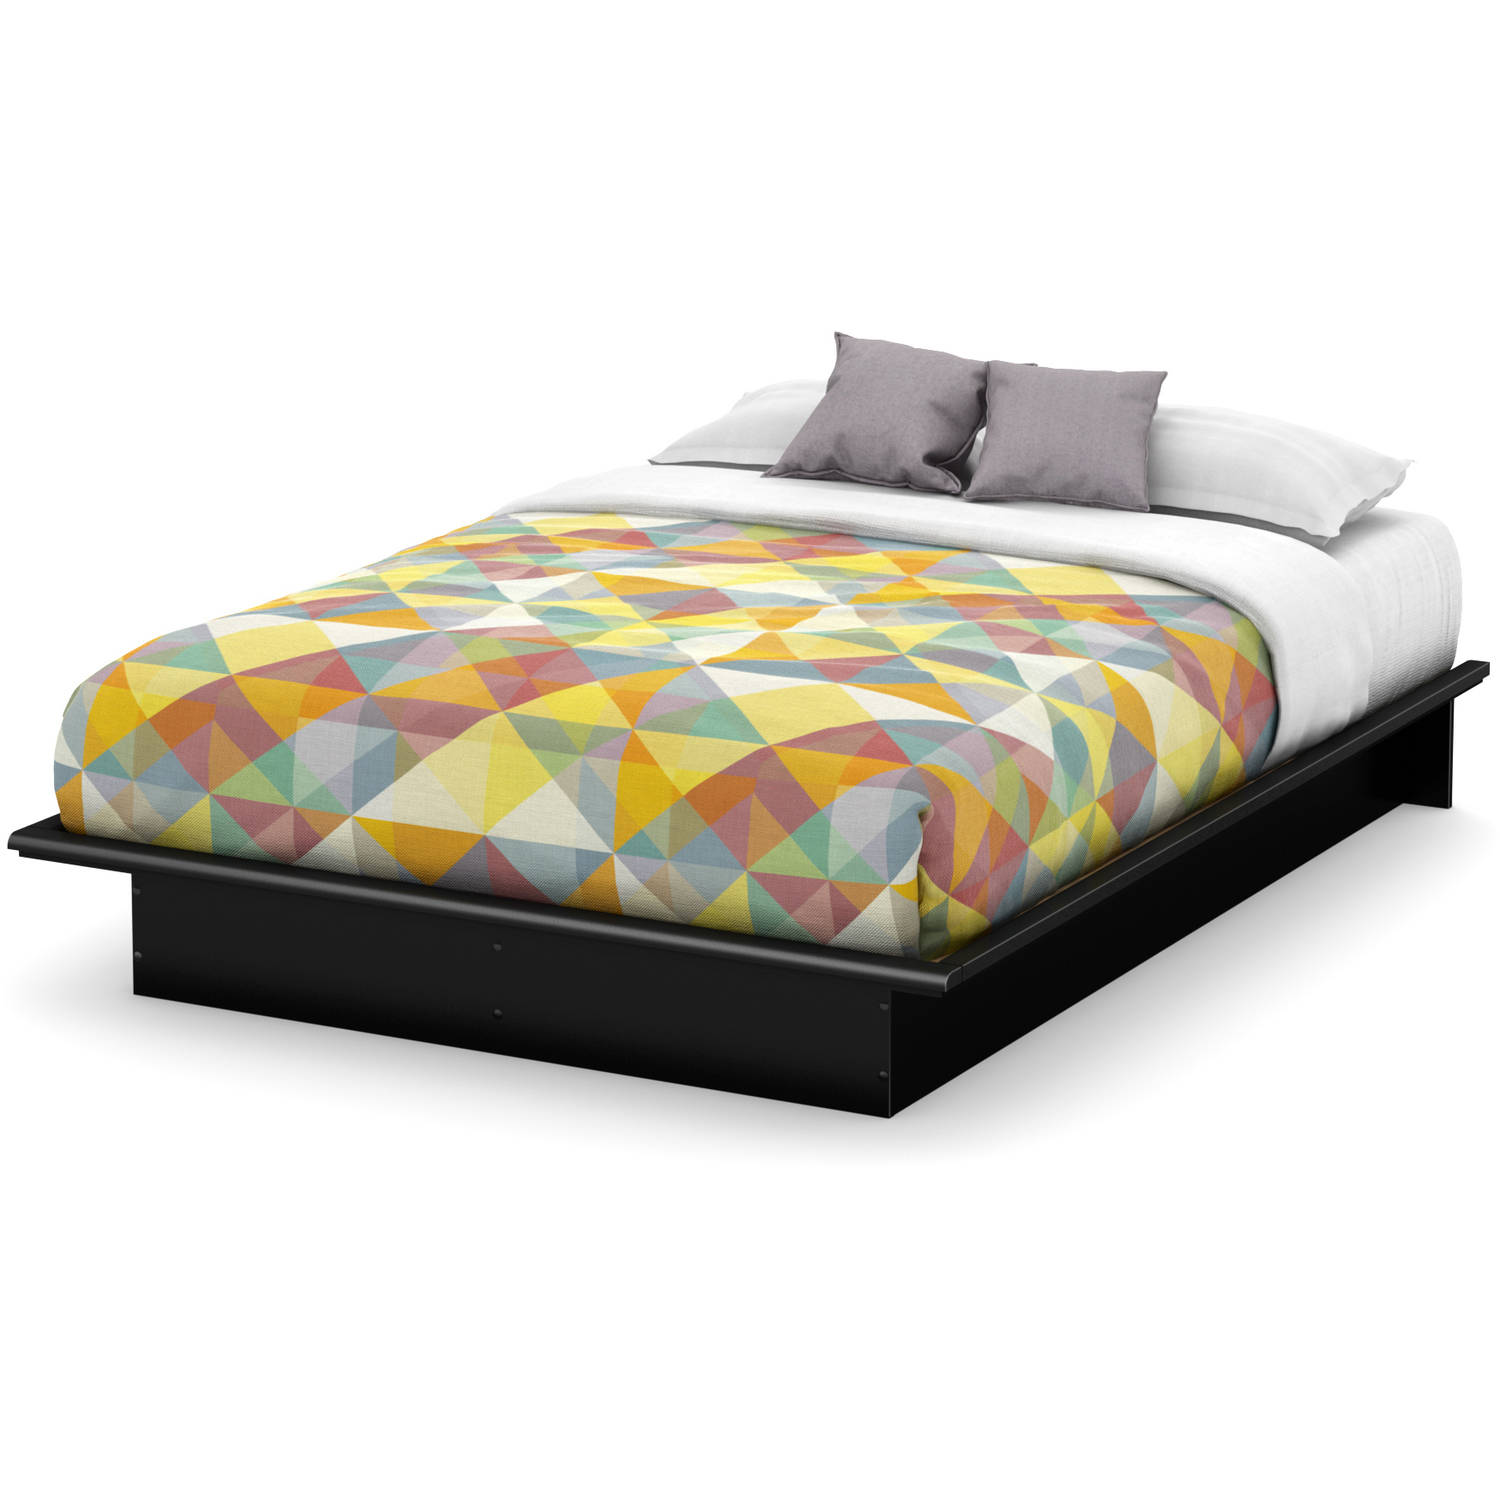 South Shore Basics Full Platform Bed with Molding, 54'', Multiple Finishes